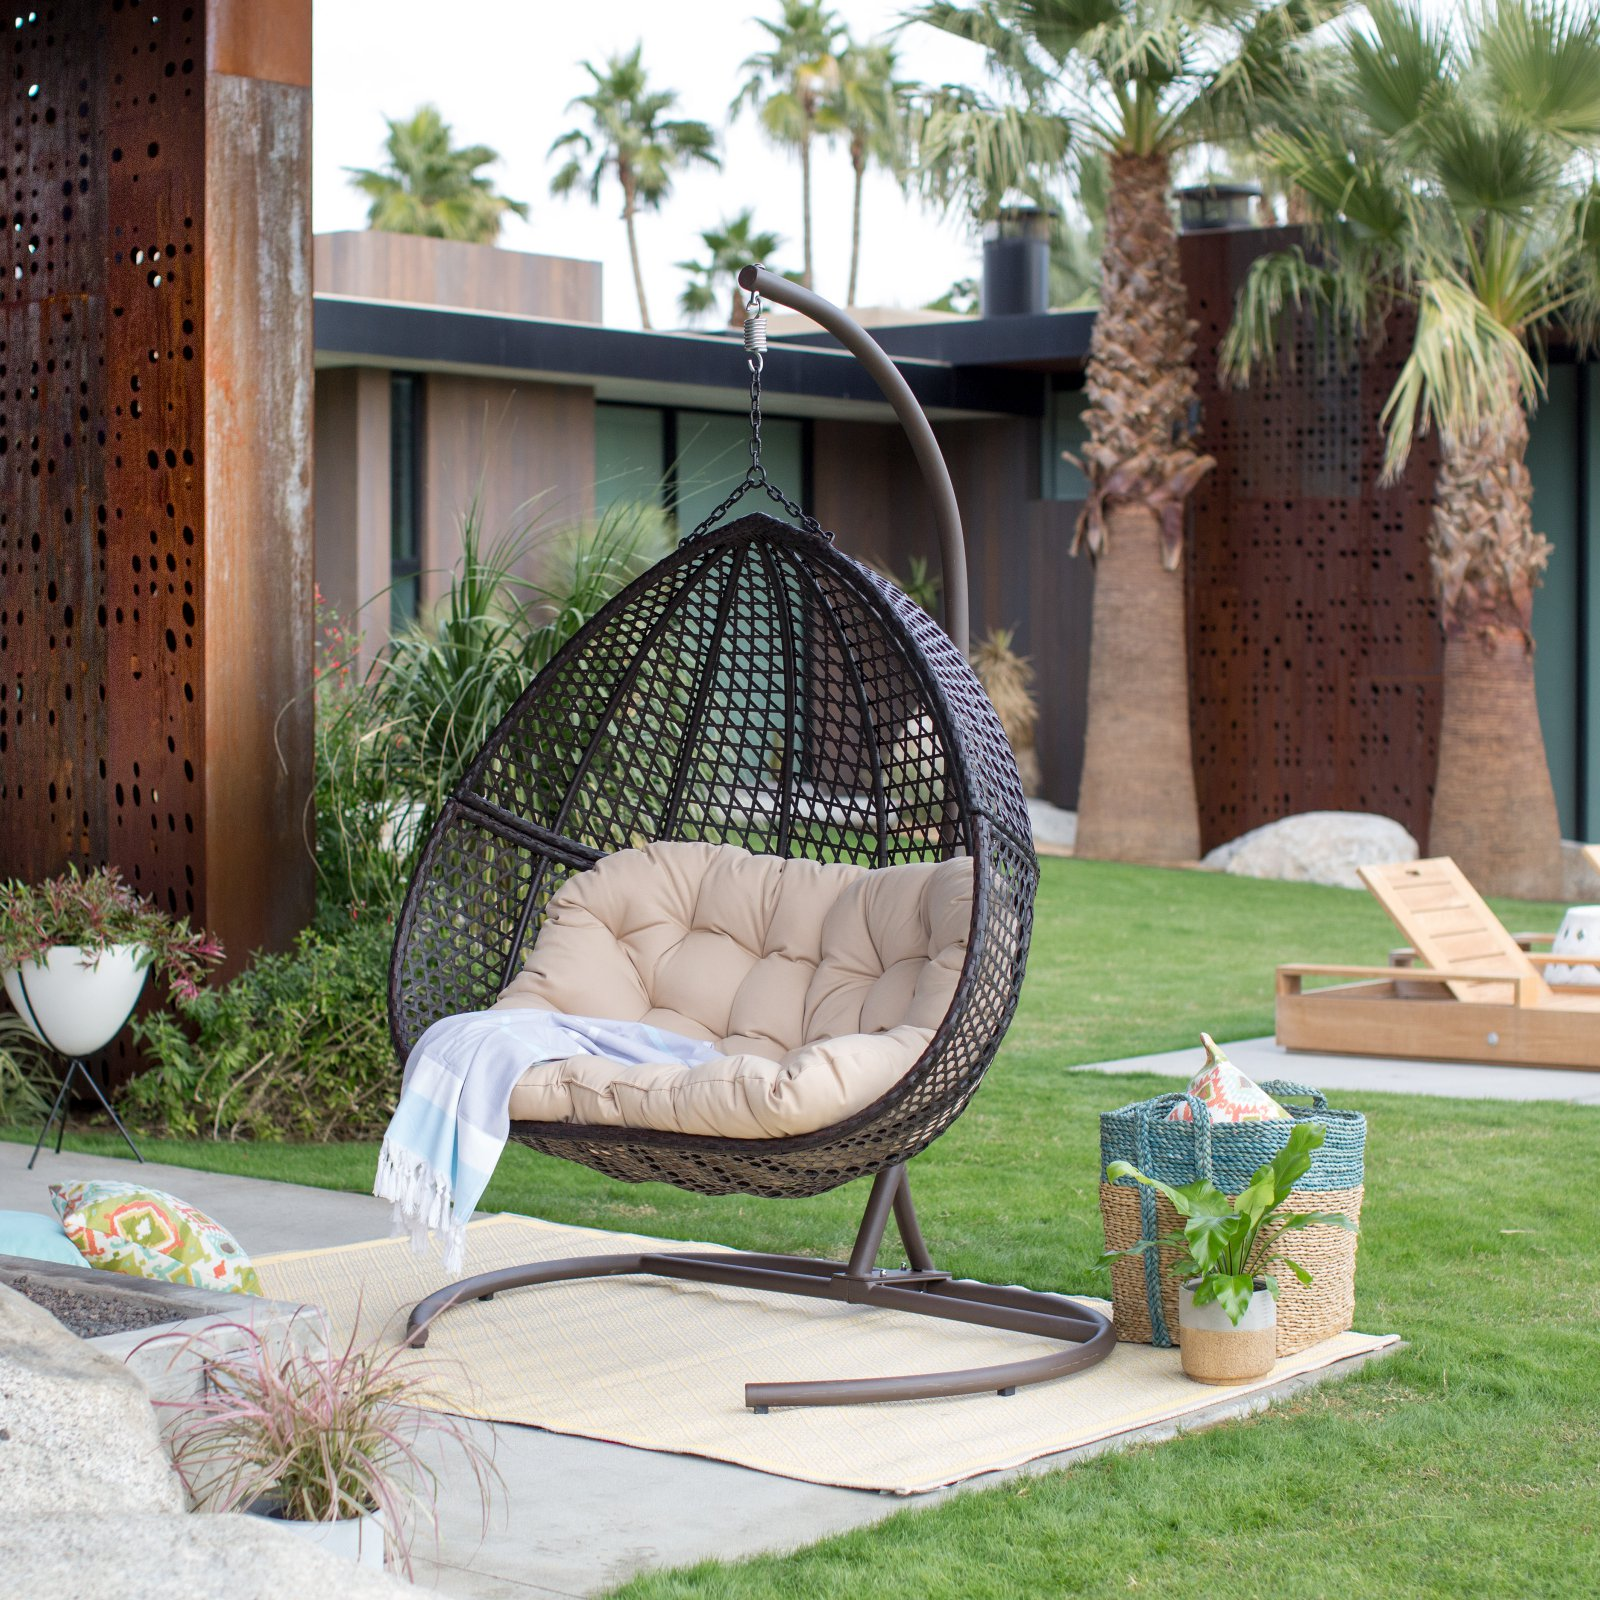 Details About Giant Hanging Double Egg Chair W Stand And Pad Wicker Hammock Outdoor Swing Seat